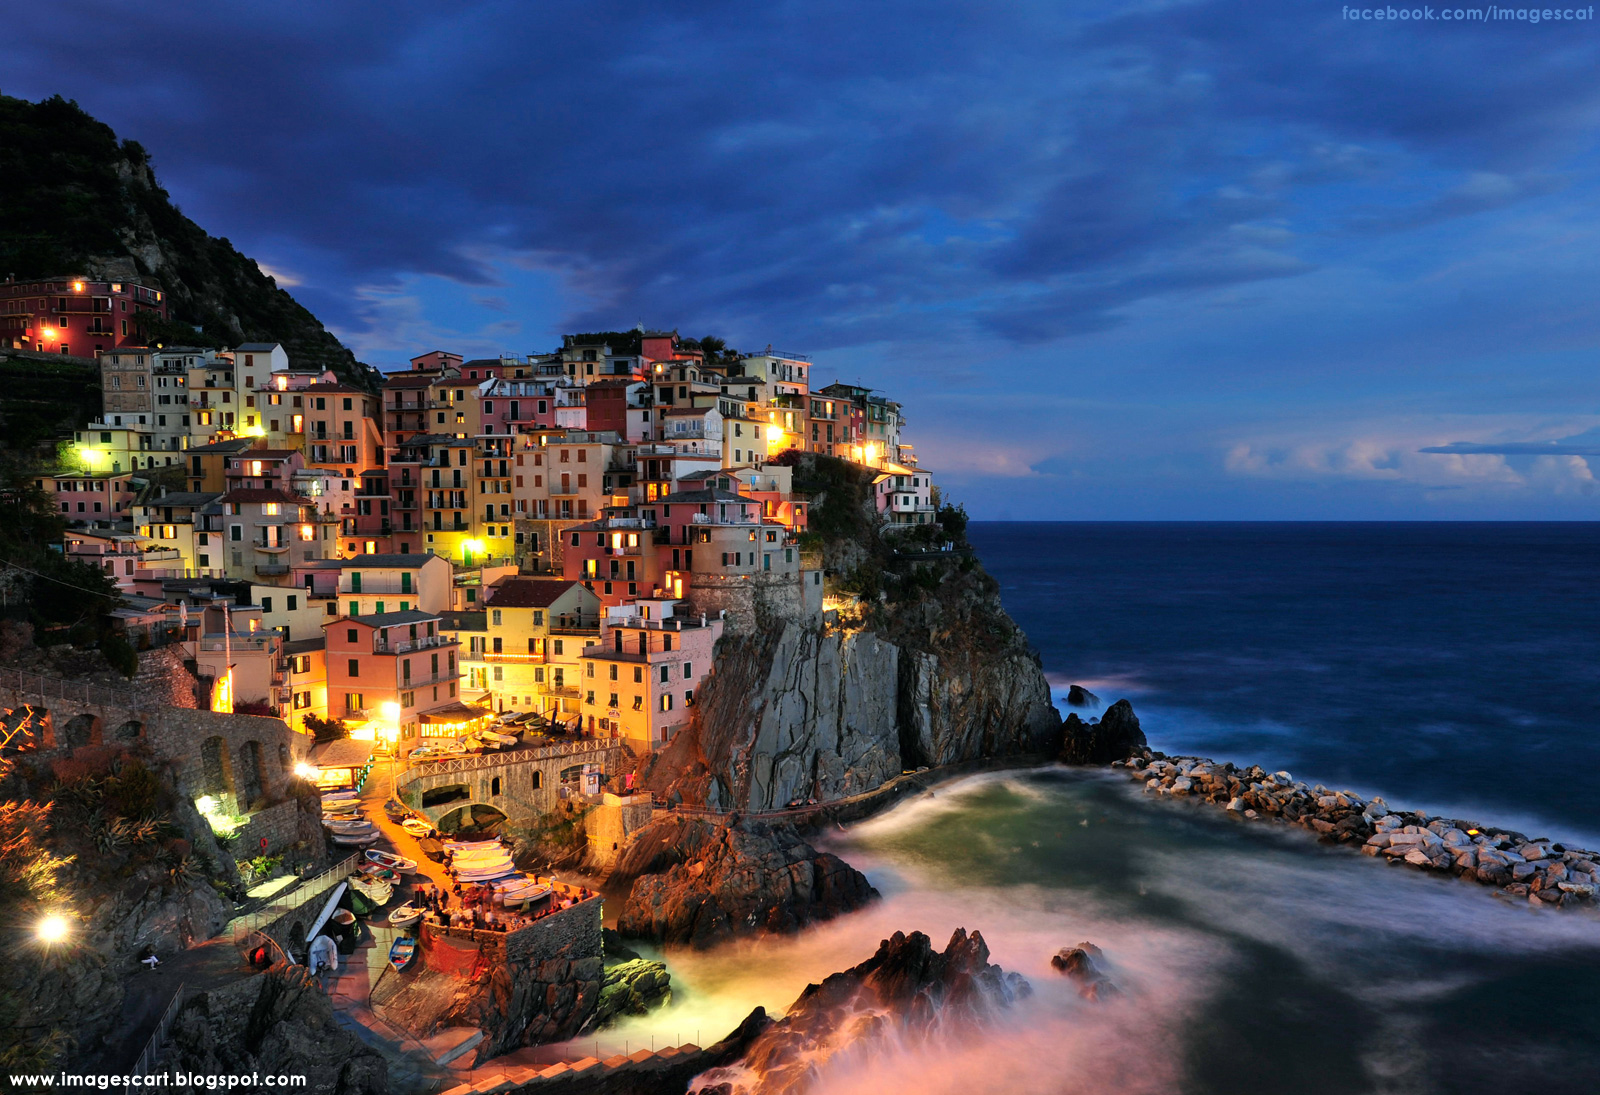 italy vernazza cinque terre places italian pretty town coast gorgeous italia place bing beach towns photograph itally ltaly cart